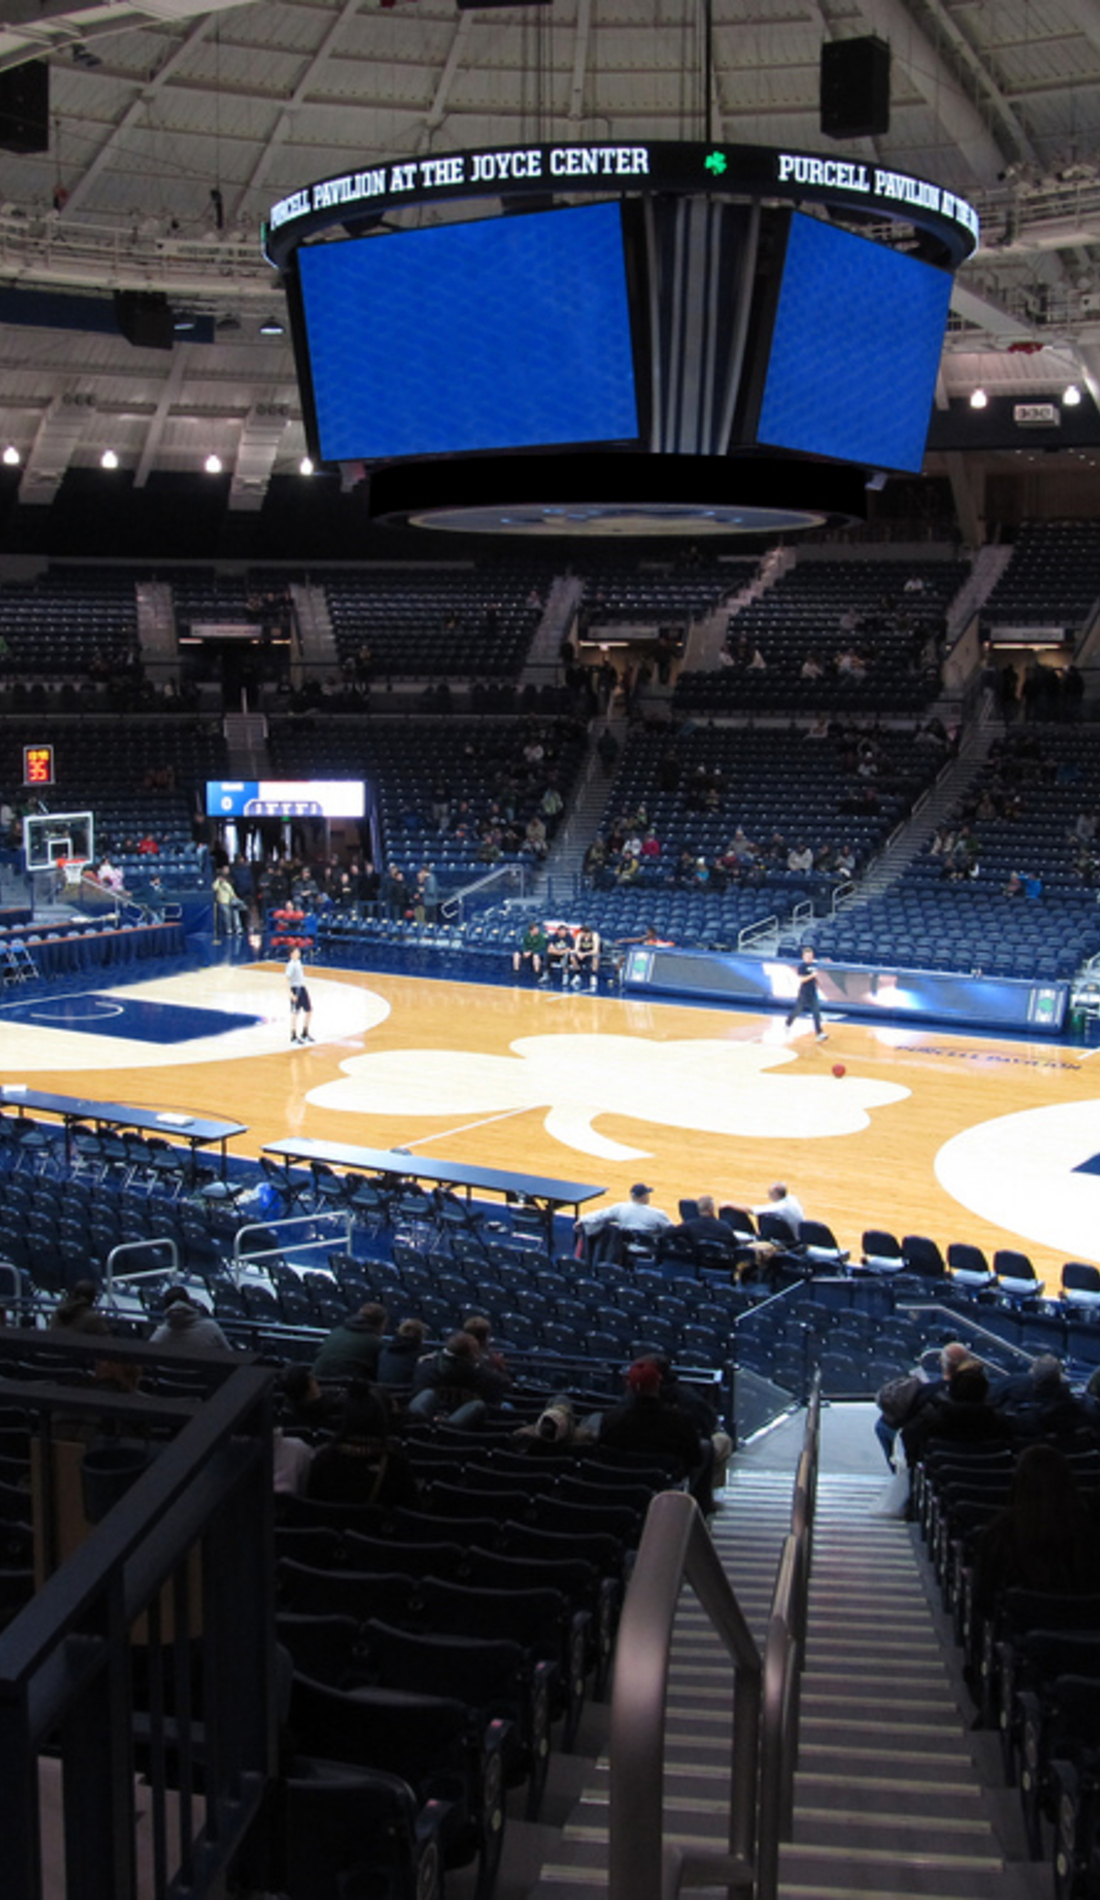 A Notre Dame Fighting Irish Basketball live event